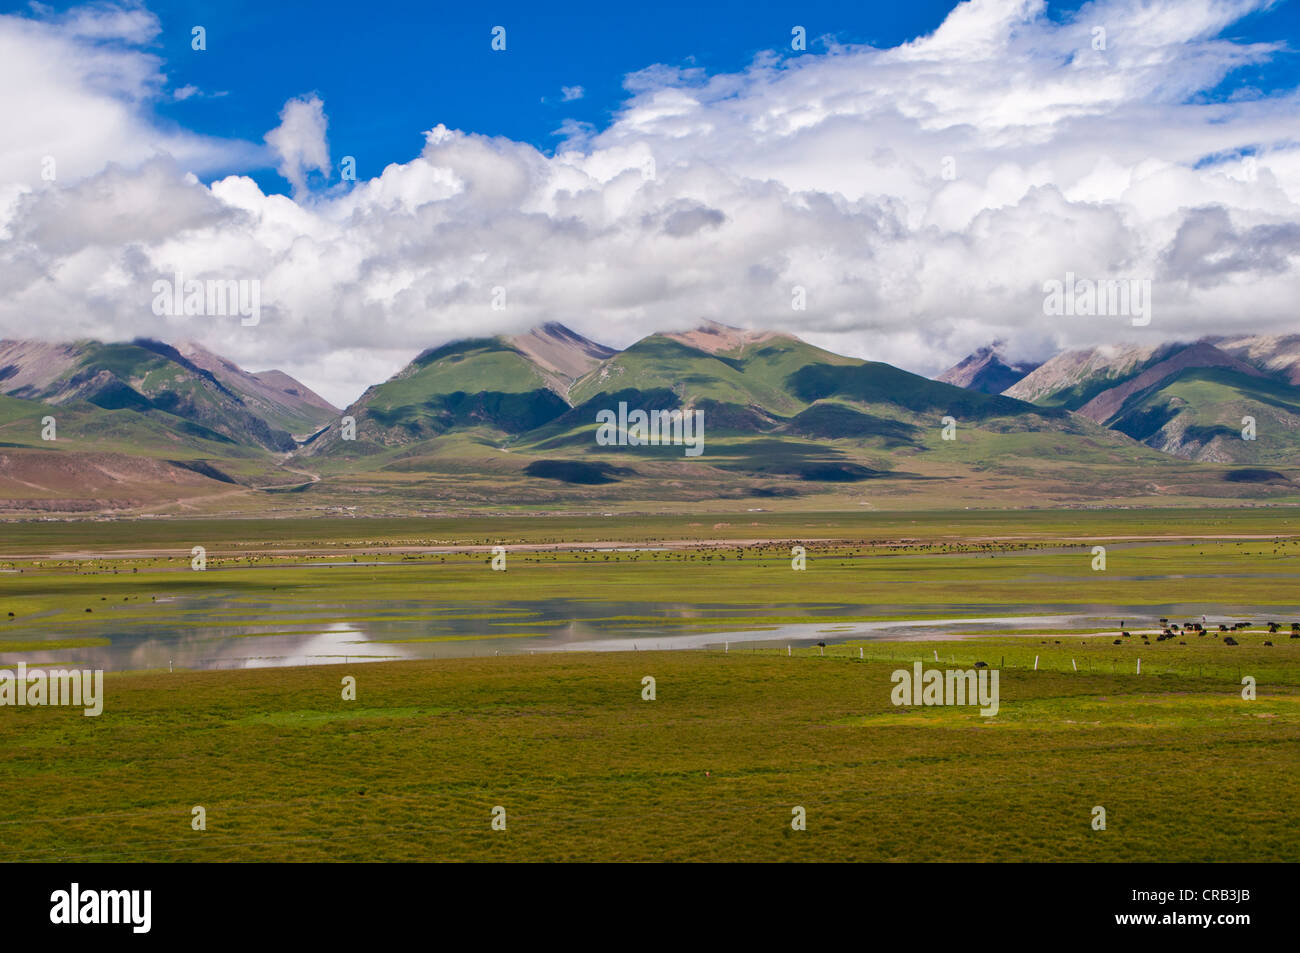 Wide open landscape of Tibet along the railway line from Lhasa to Chengdu, Tibet, Asia Stock Photo